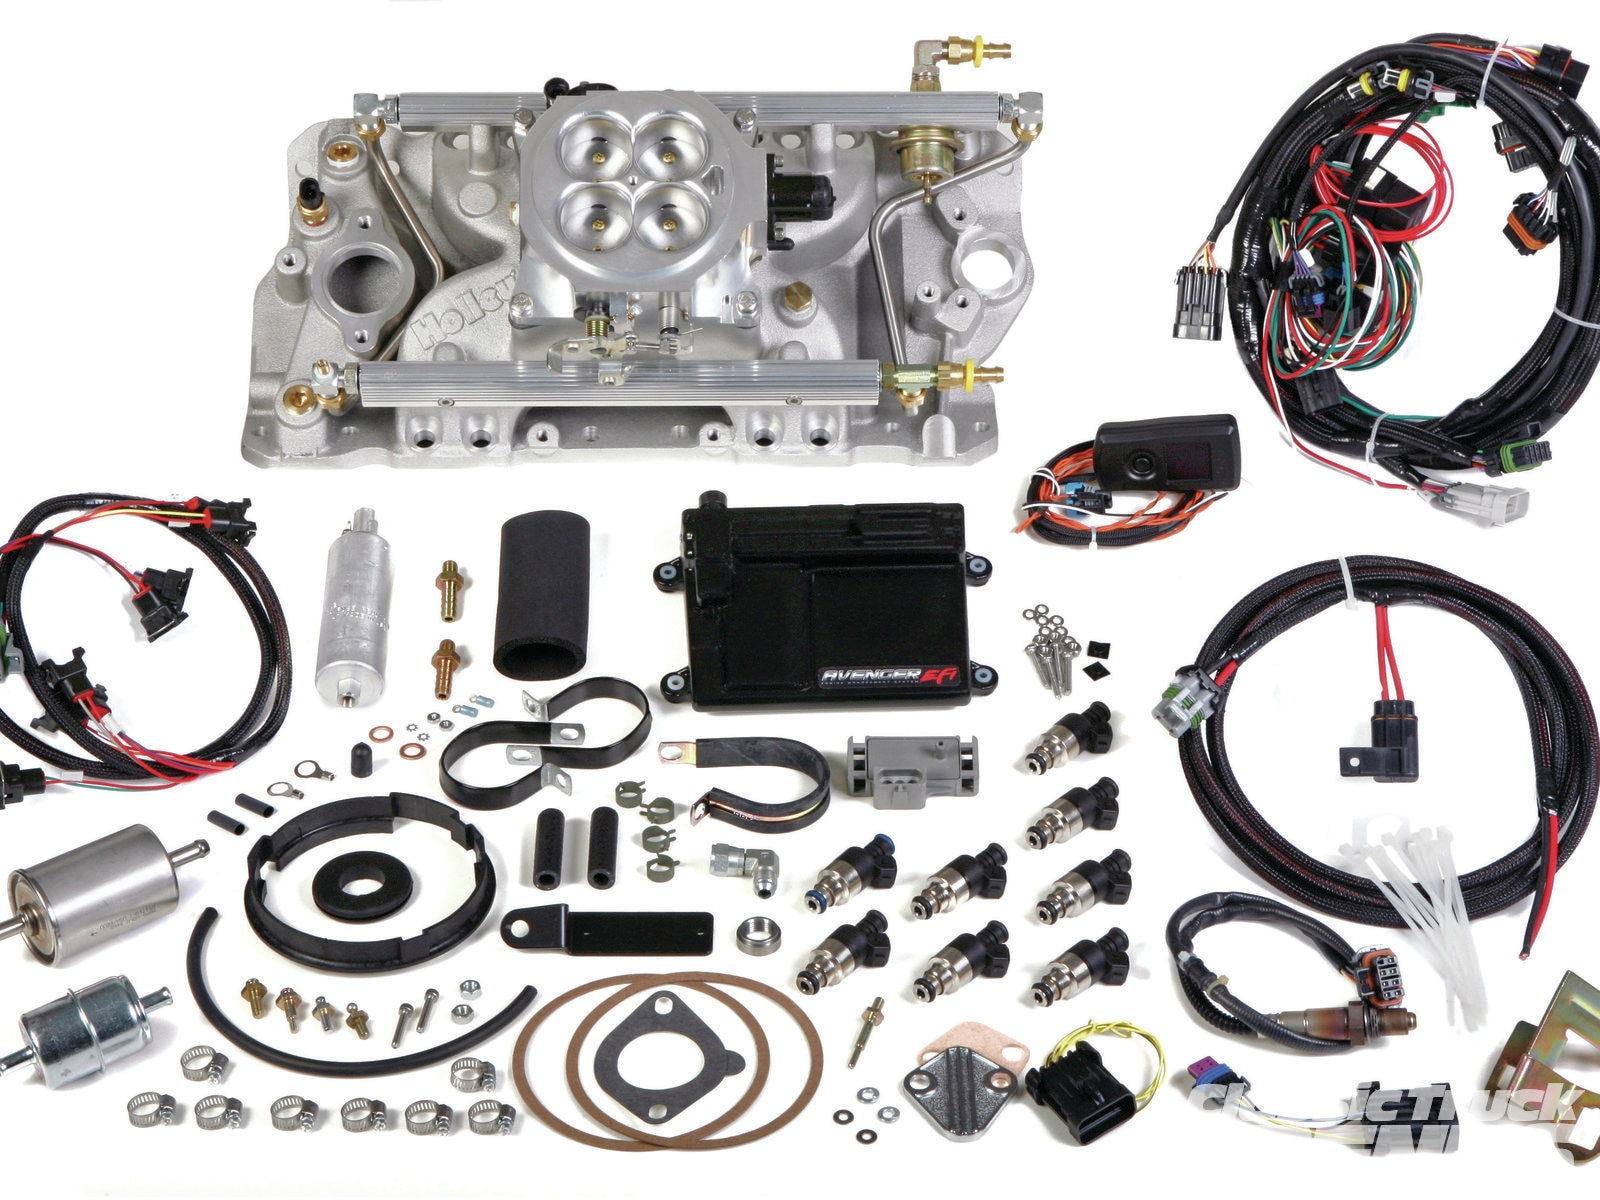 holley avenger multiport efi system1?resize\=665%2C499 kenwood dnx6140 wiring diagram cd player kenwood kdc hd942u kenwood kdc hd942u wiring diagram at bakdesigns.co